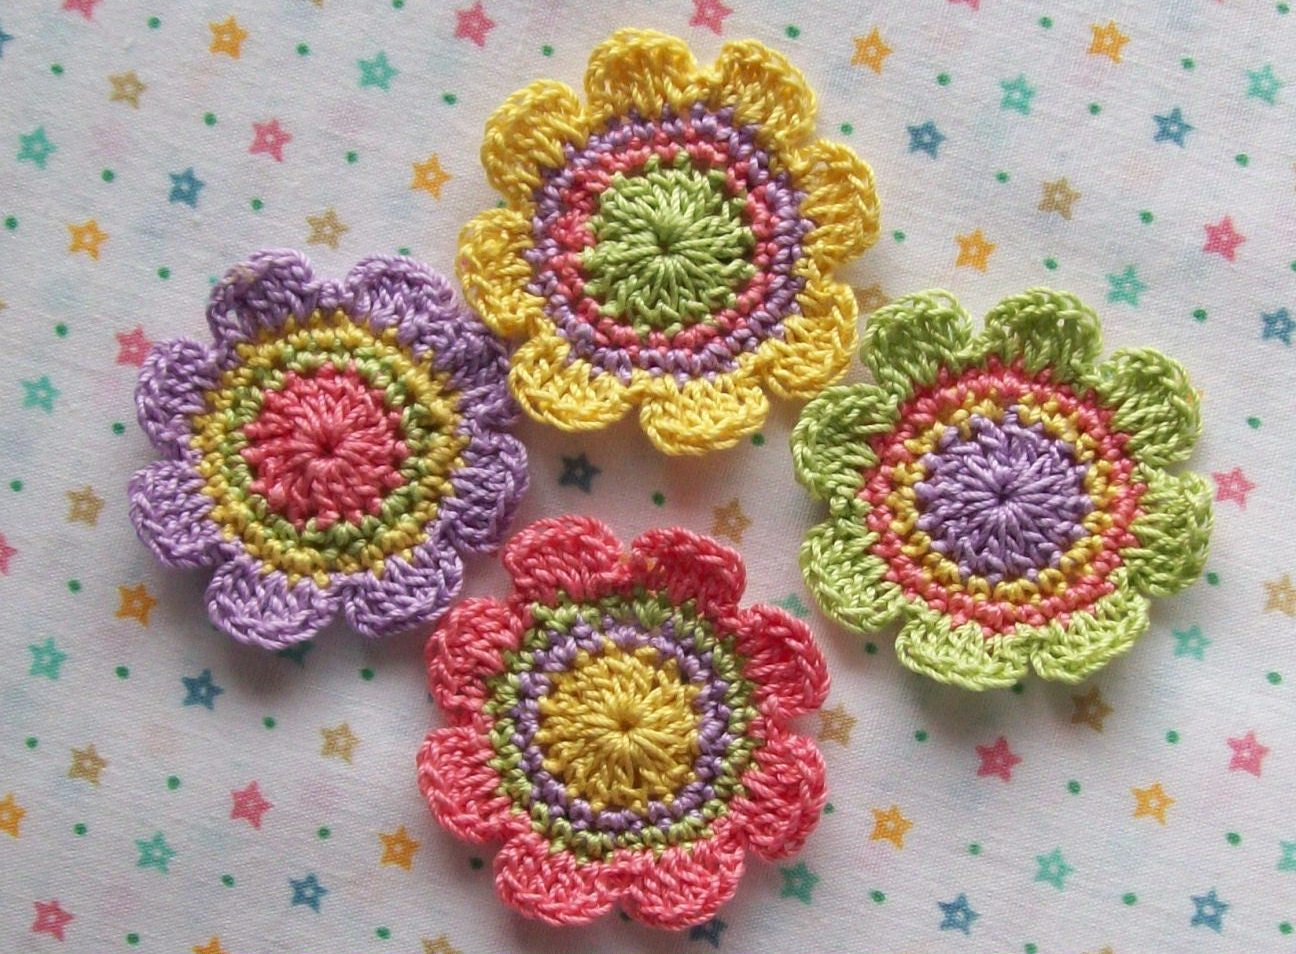 Crochet Pattern Central - Crochet - Craft Revolution - Craft